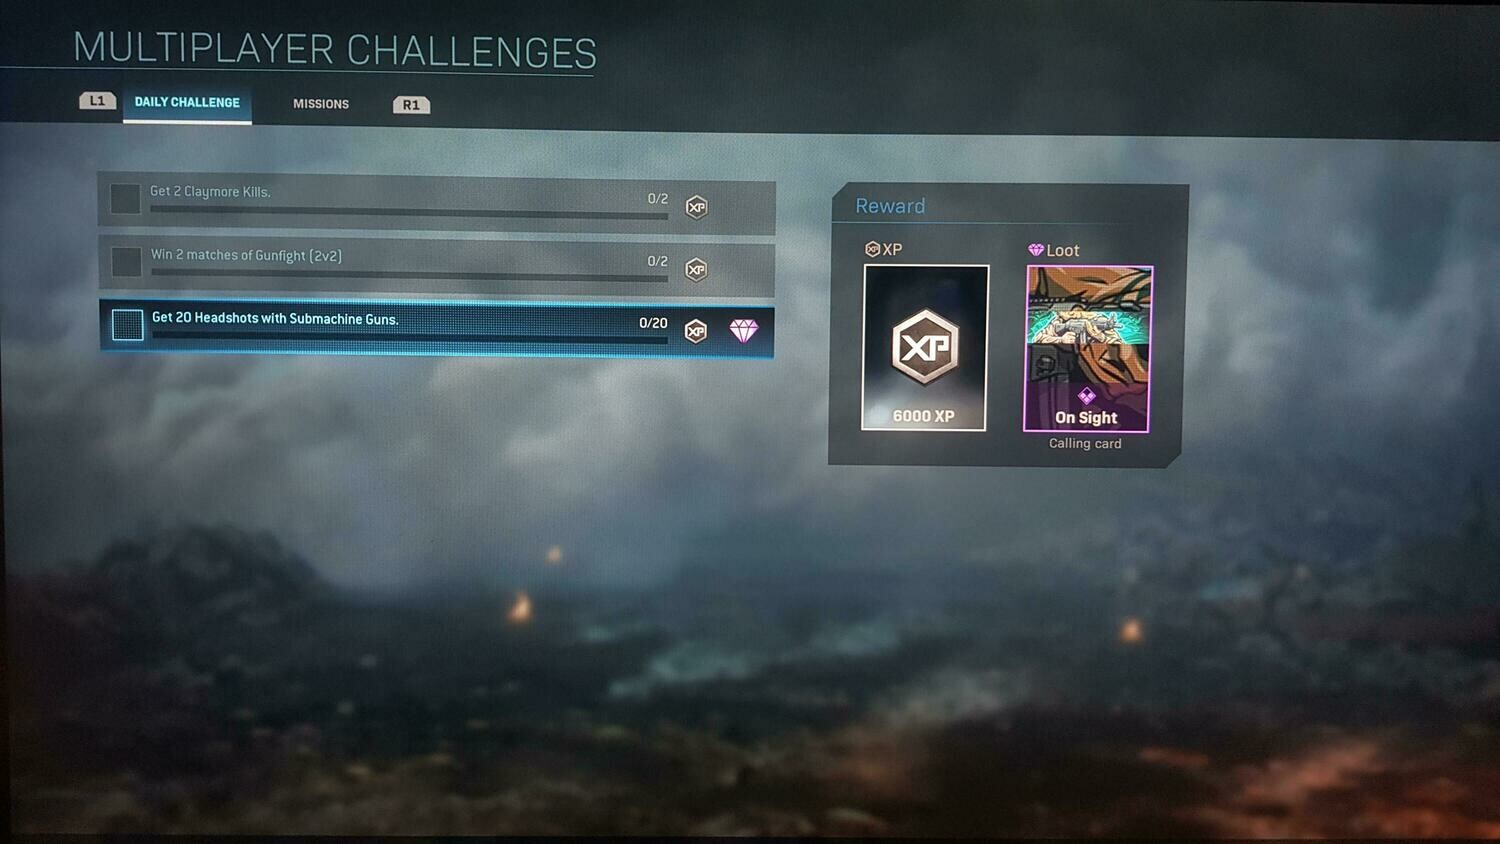 Daily Challenges